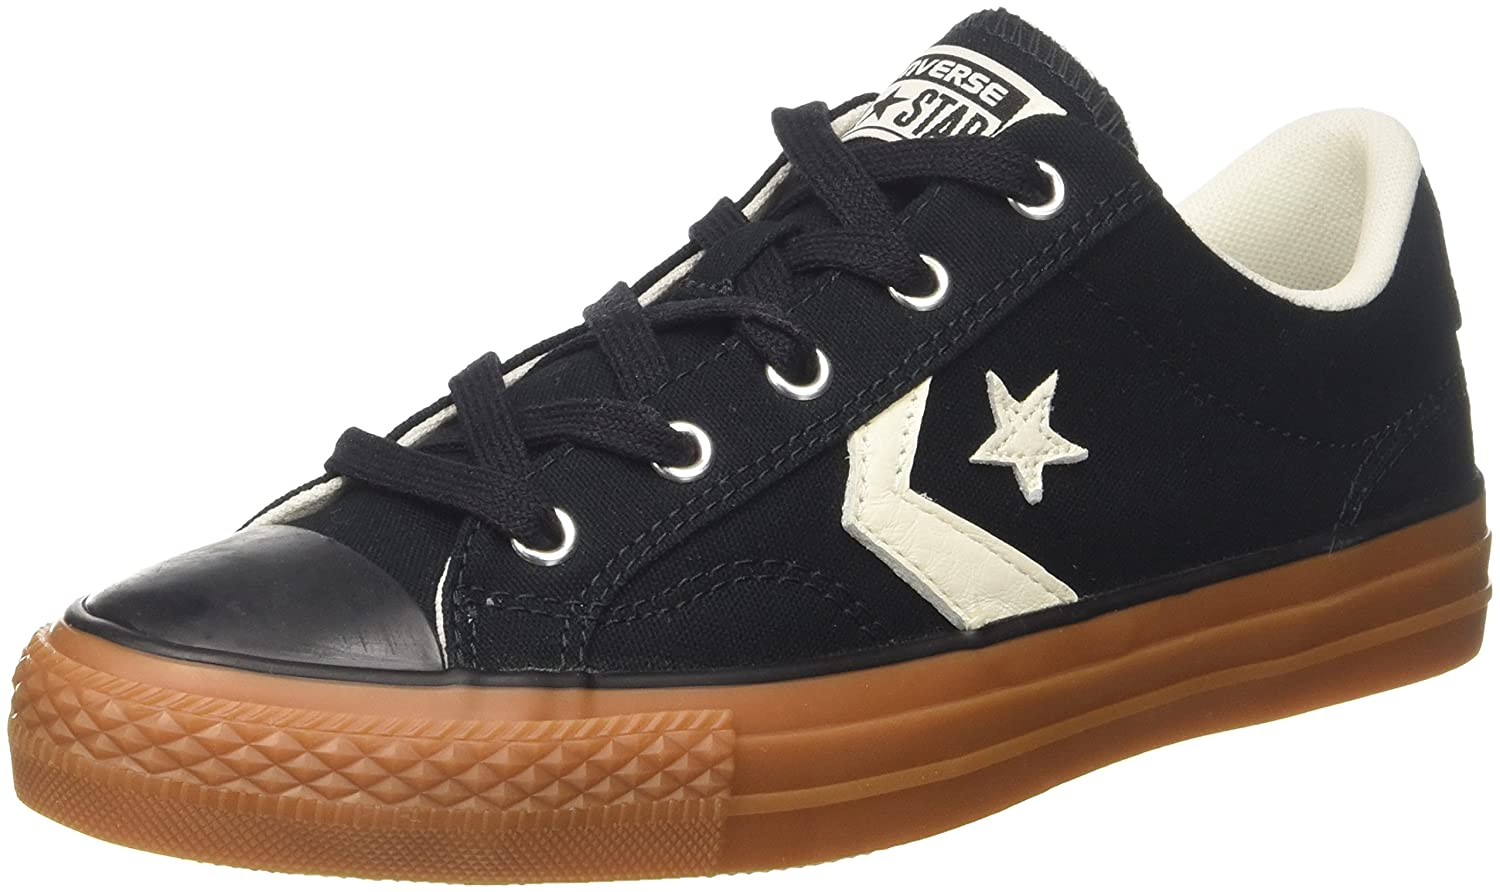 TALLA 39/40 EU. Converse Star Player Ox Black/Egret/Honey, Zapatillas Unisex Adulto